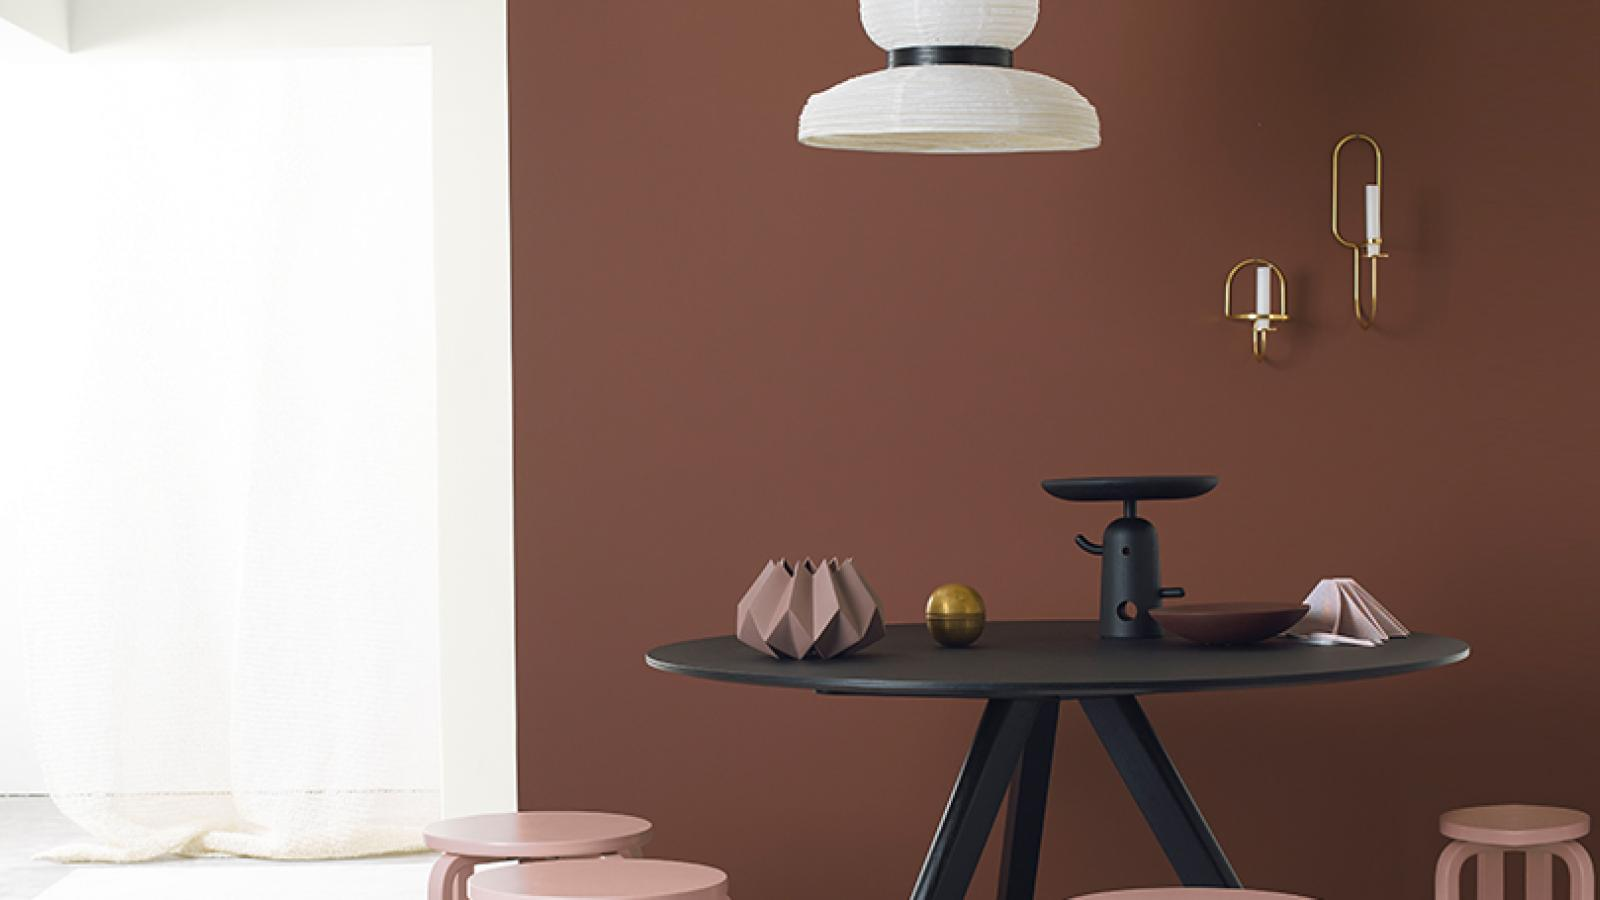 Revamp your home with Jotun Paints inspiring color collection